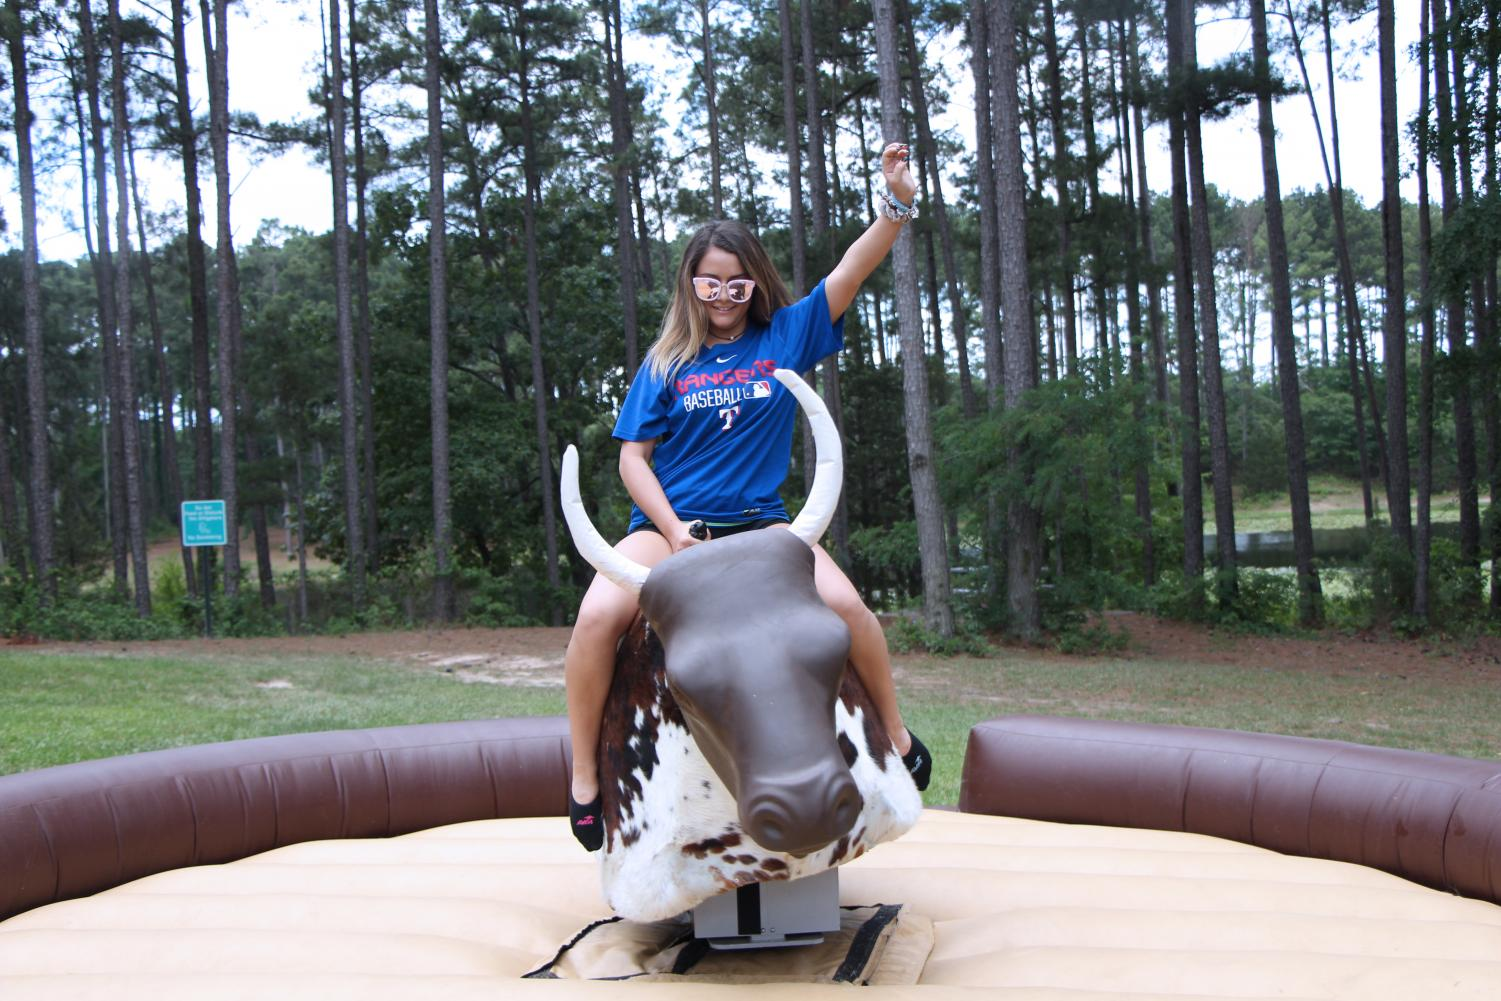 Senior Melissa Newman rides a mechanical bull during the senior picnic. Along with basketball, football, volleyball and soccer, the bull was one of the main attractions for students.